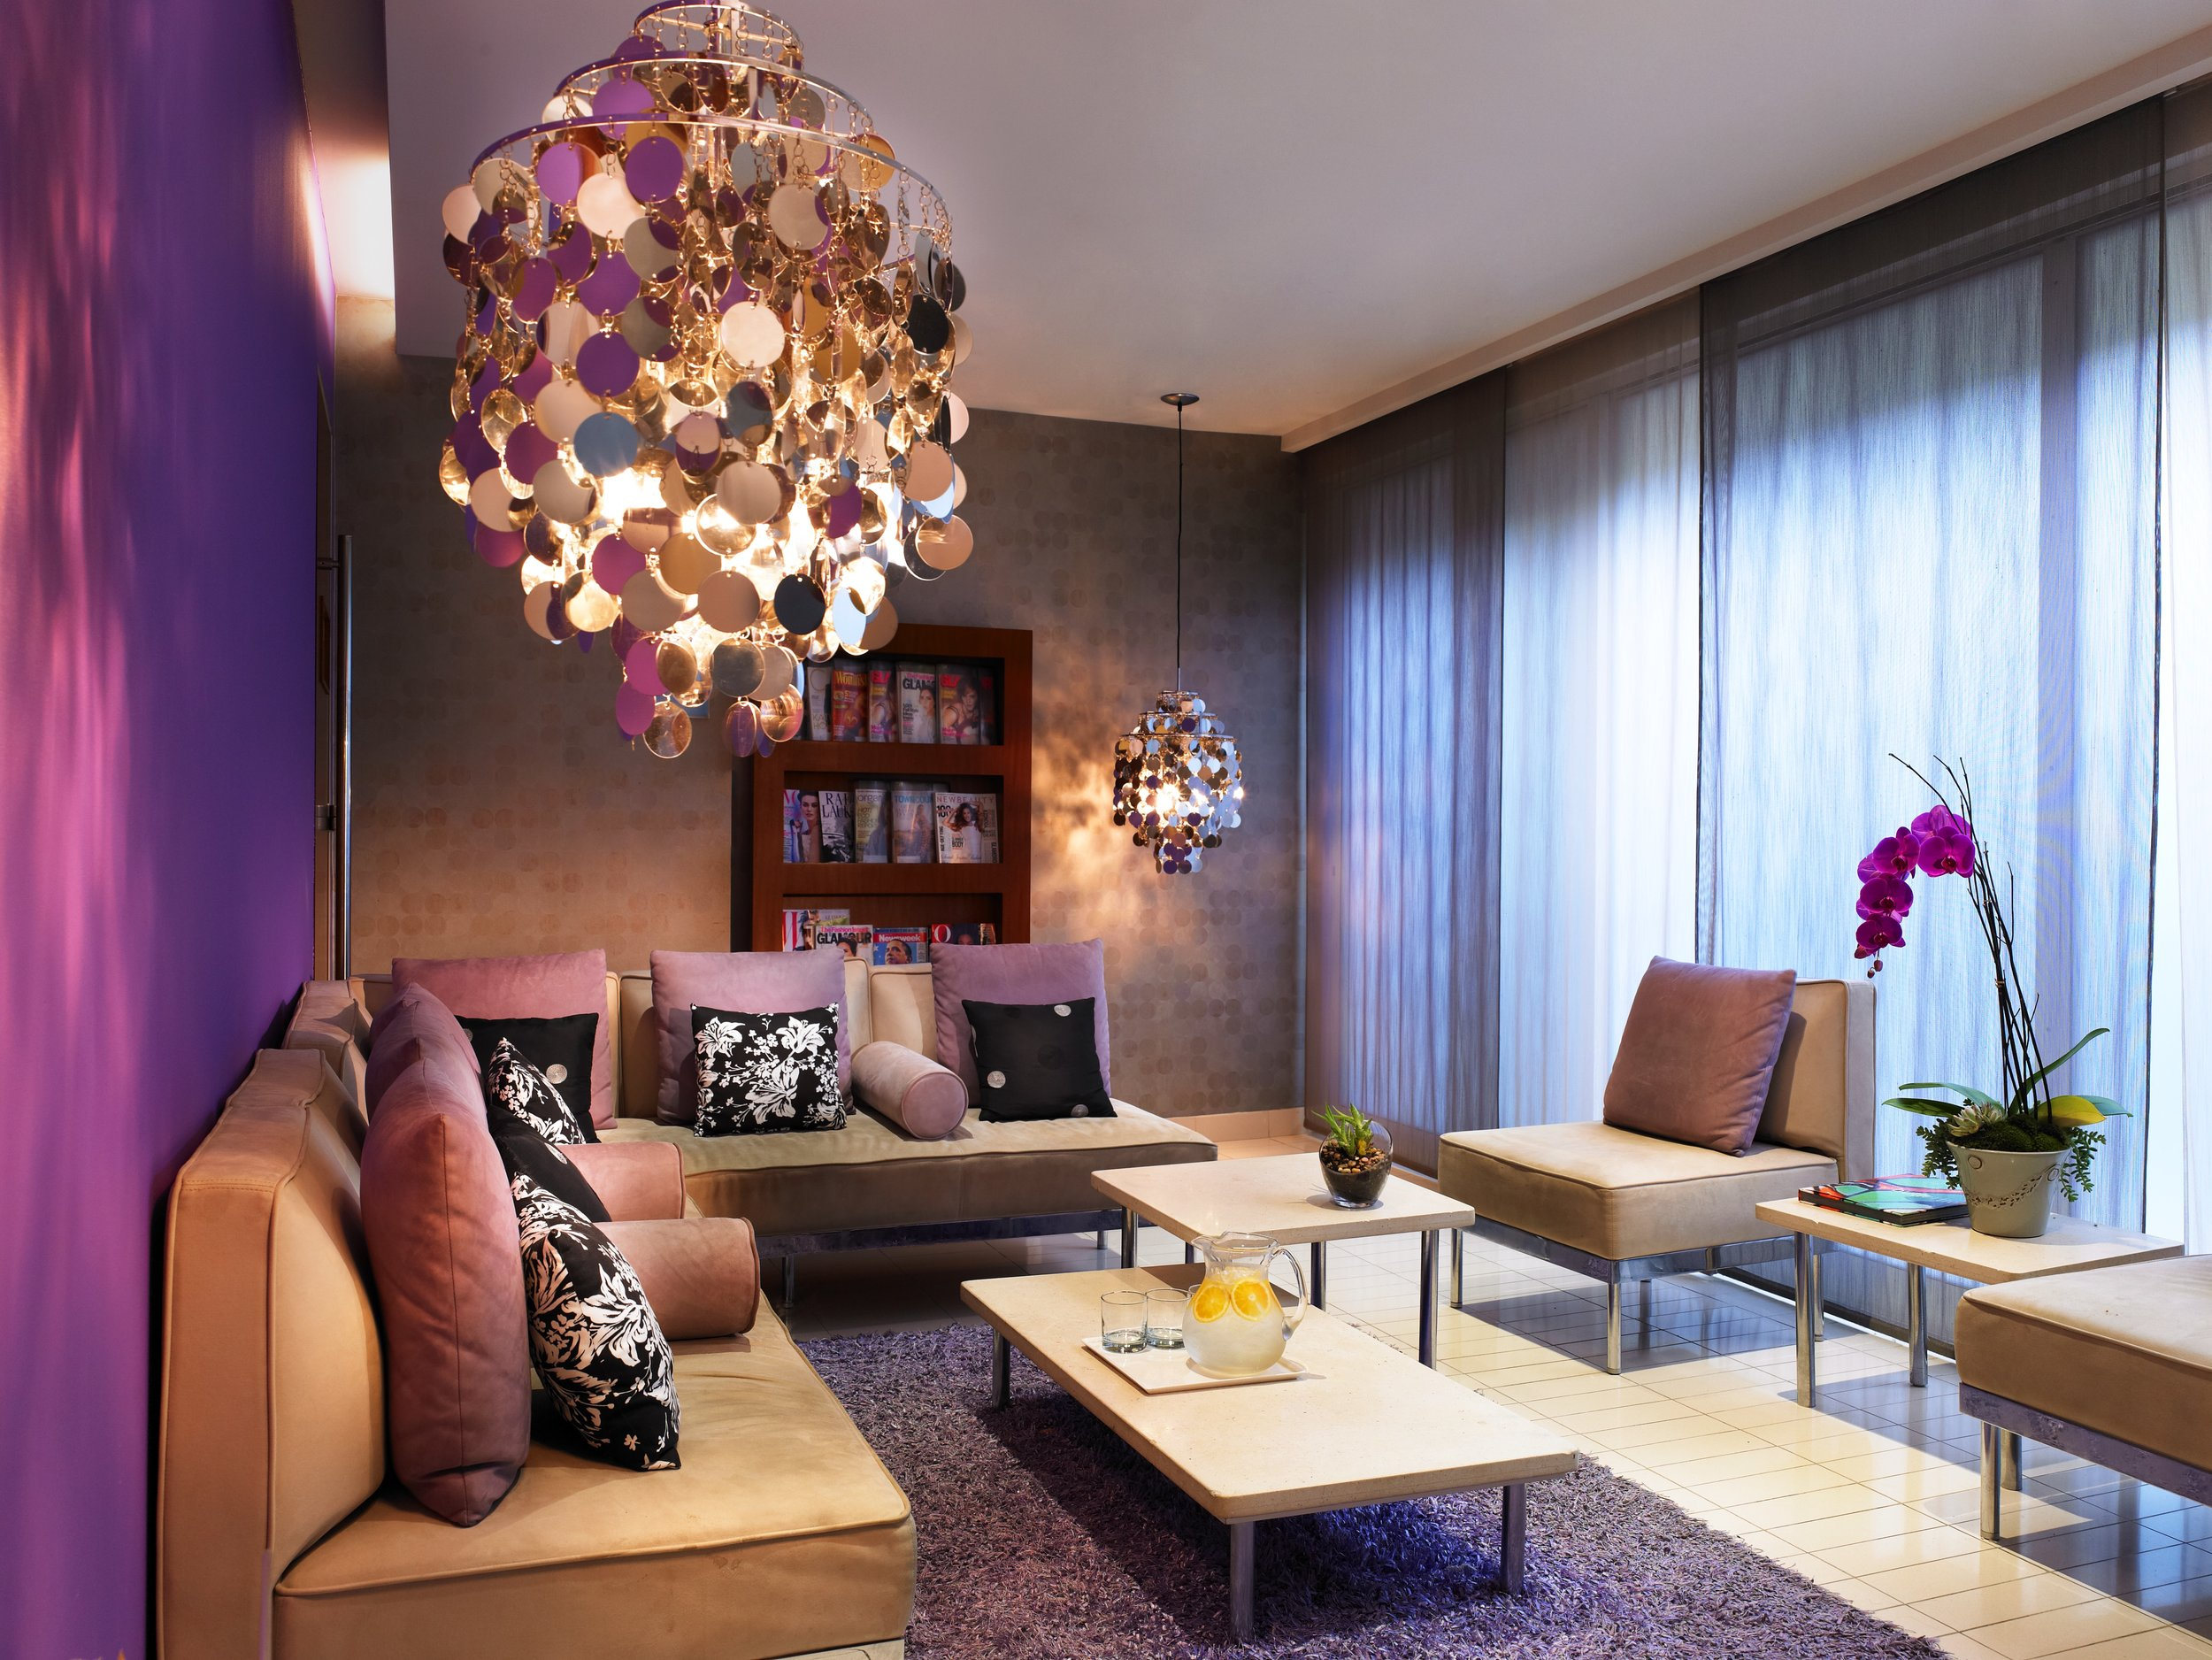 Bliss Spa Lounge Area